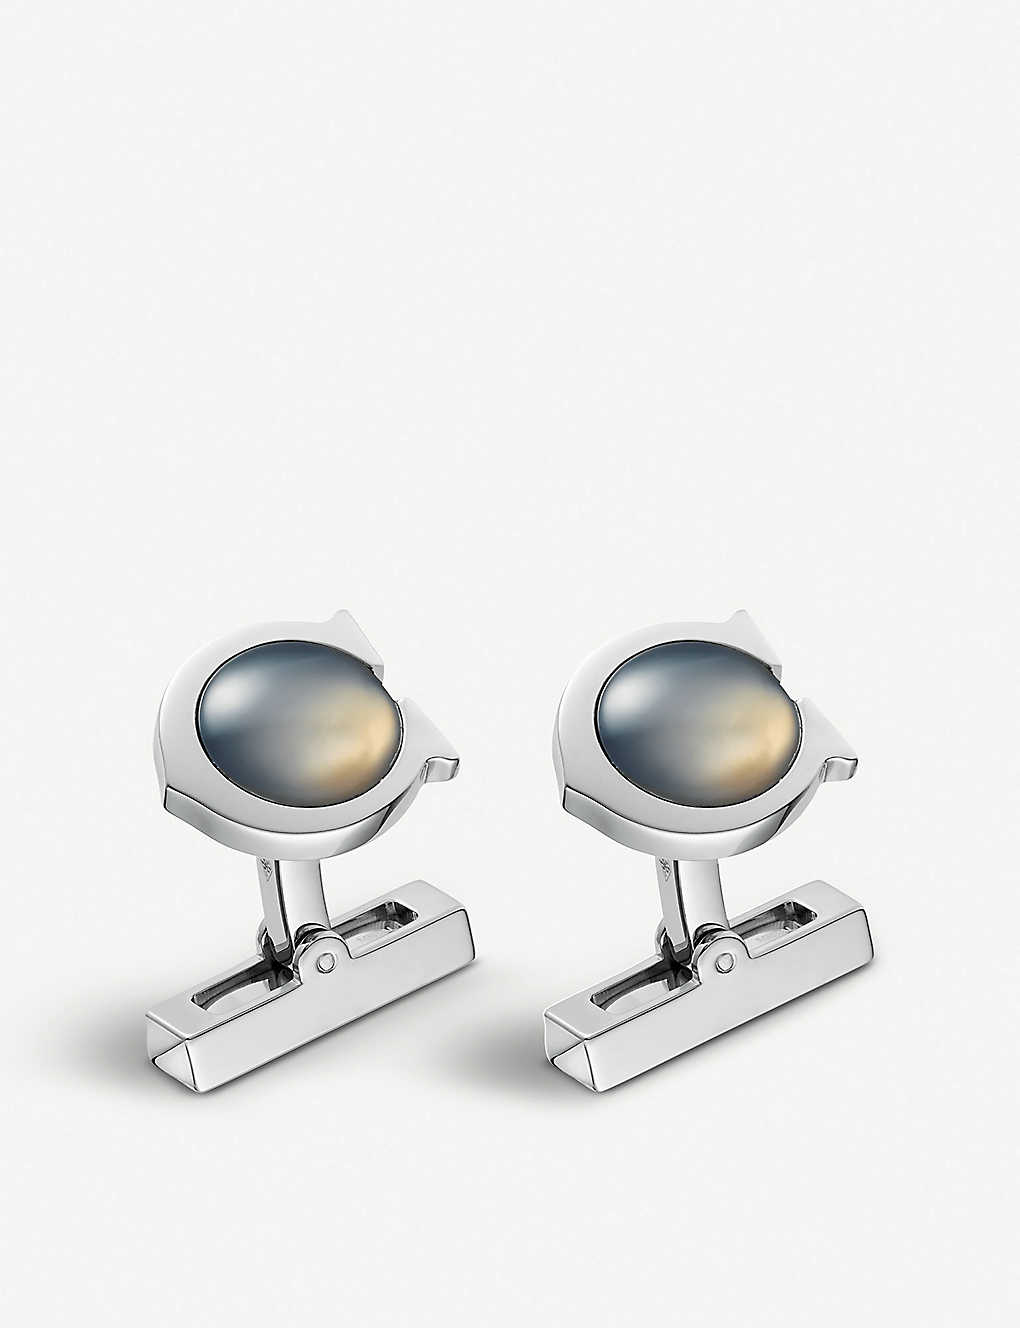 CARTIER: C de Cartier sterling silver and chalcedony cufflinks